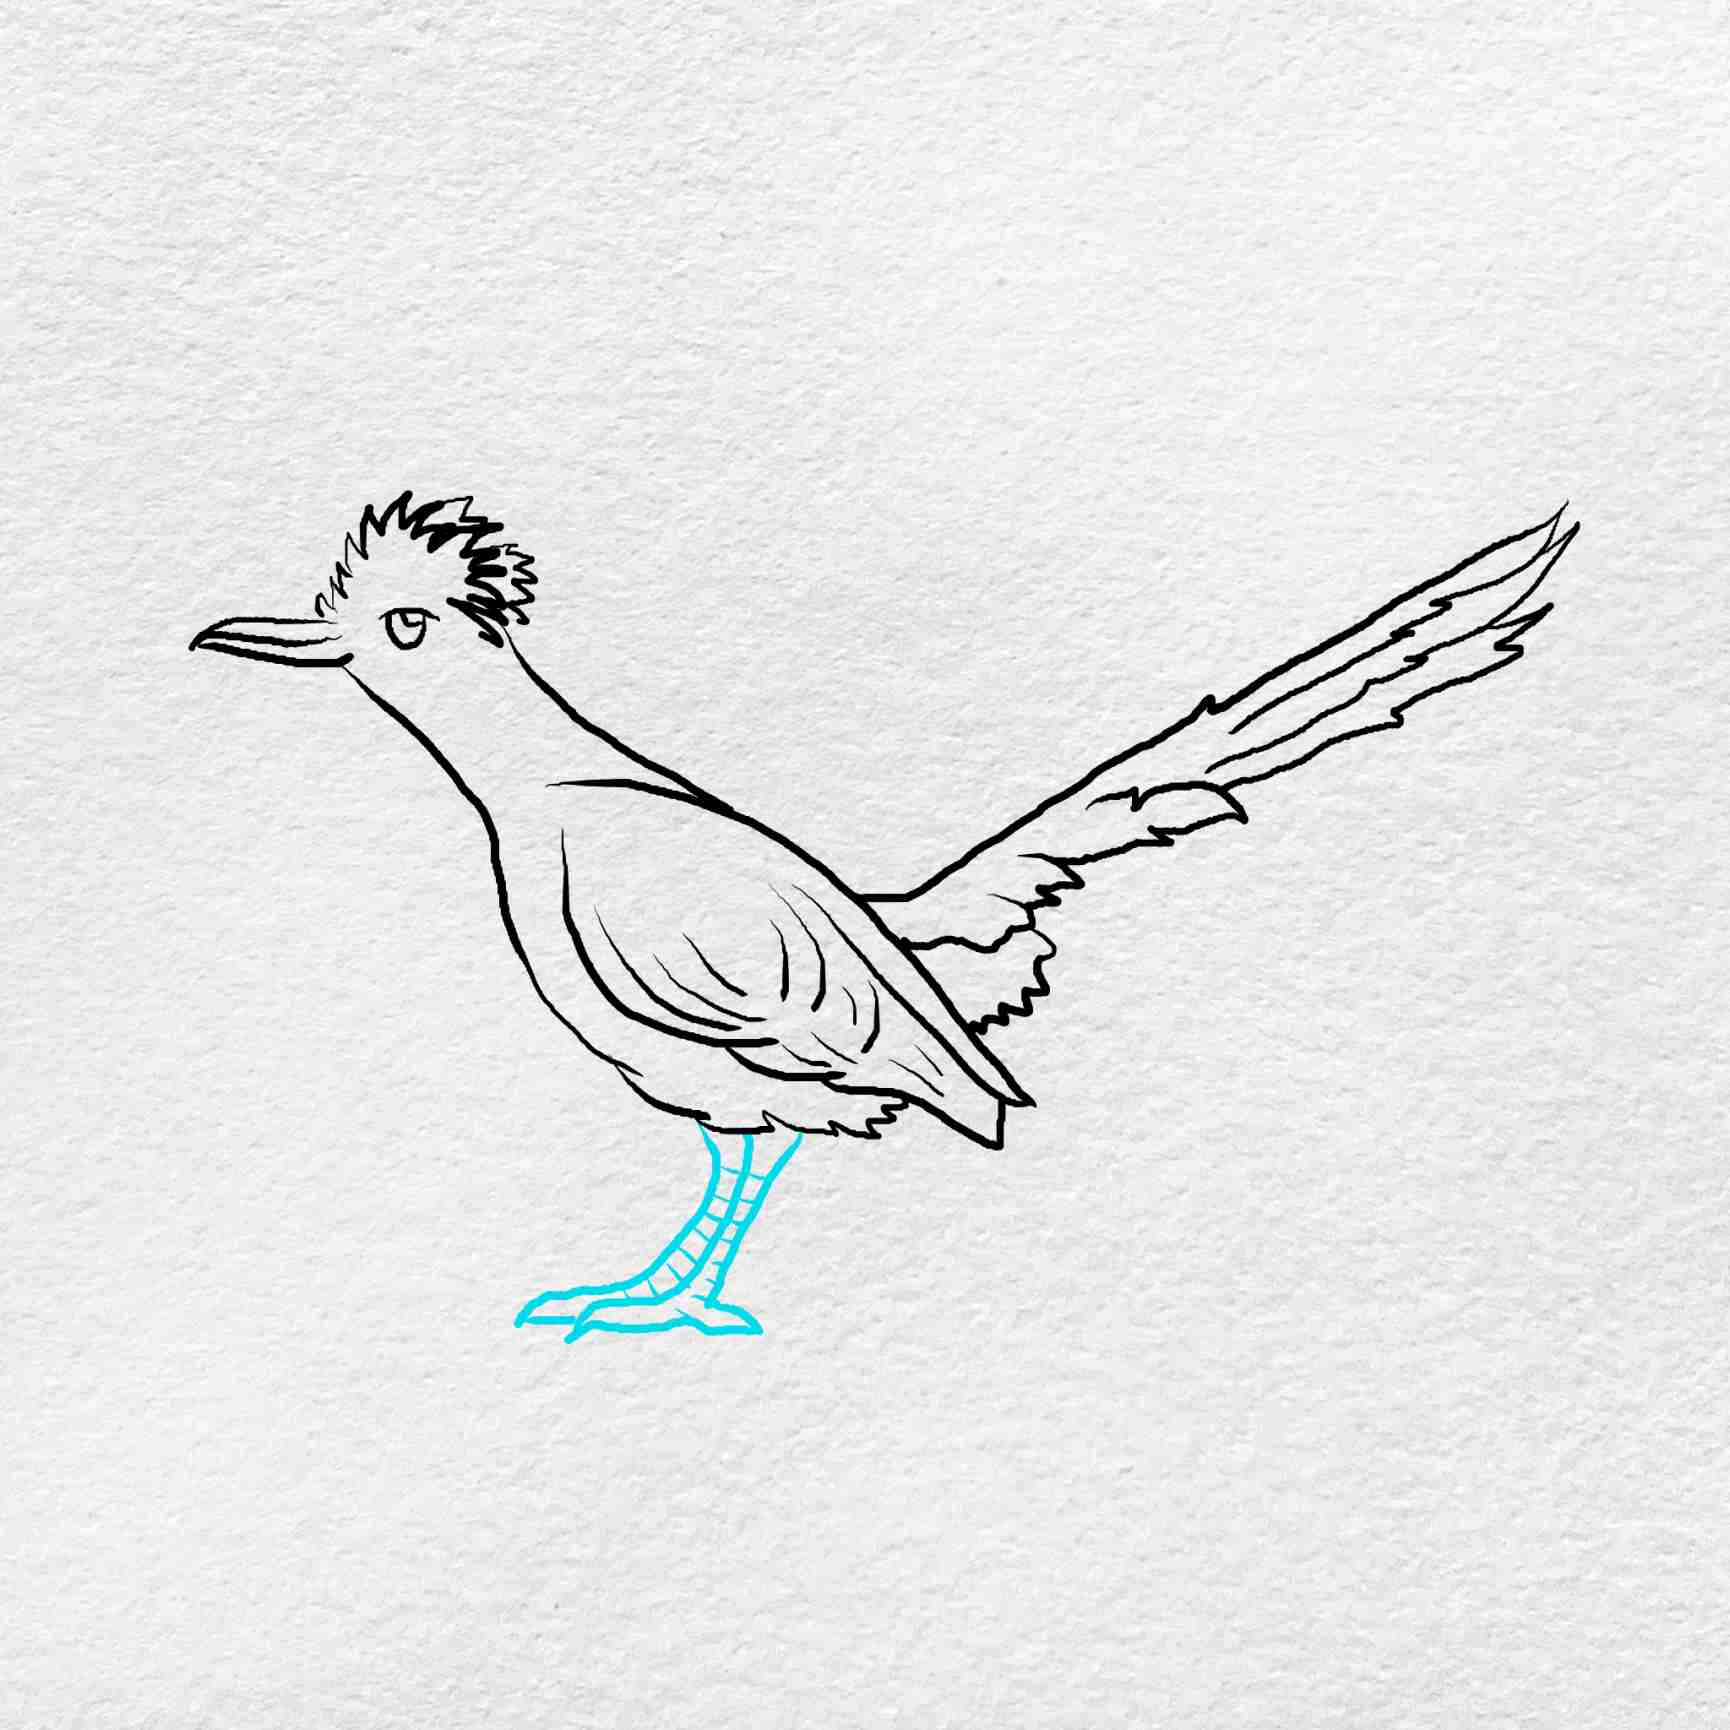 How To Draw A Roadrunner: Step 5